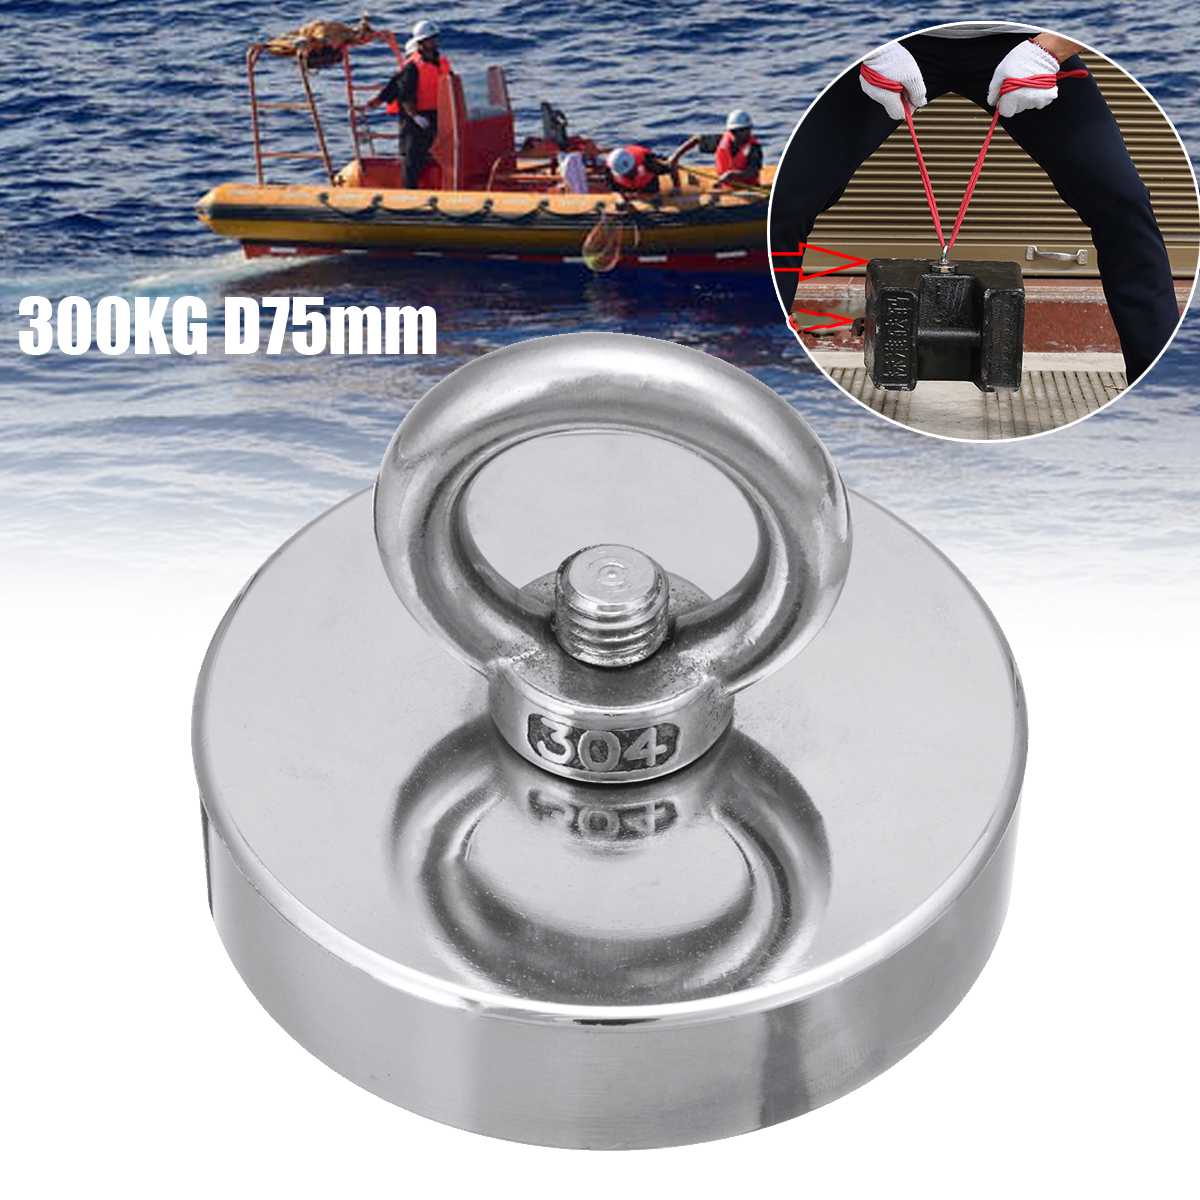 300KG D75mm Salvage Neodymium Magnet Fishing Salvage Recovery Retrieving Magnet Super Powerful Hole Circular Ring Hook suleve 75x80mm neodymium recovery magnet metal detector eyebolt circular ring magnet 165kg